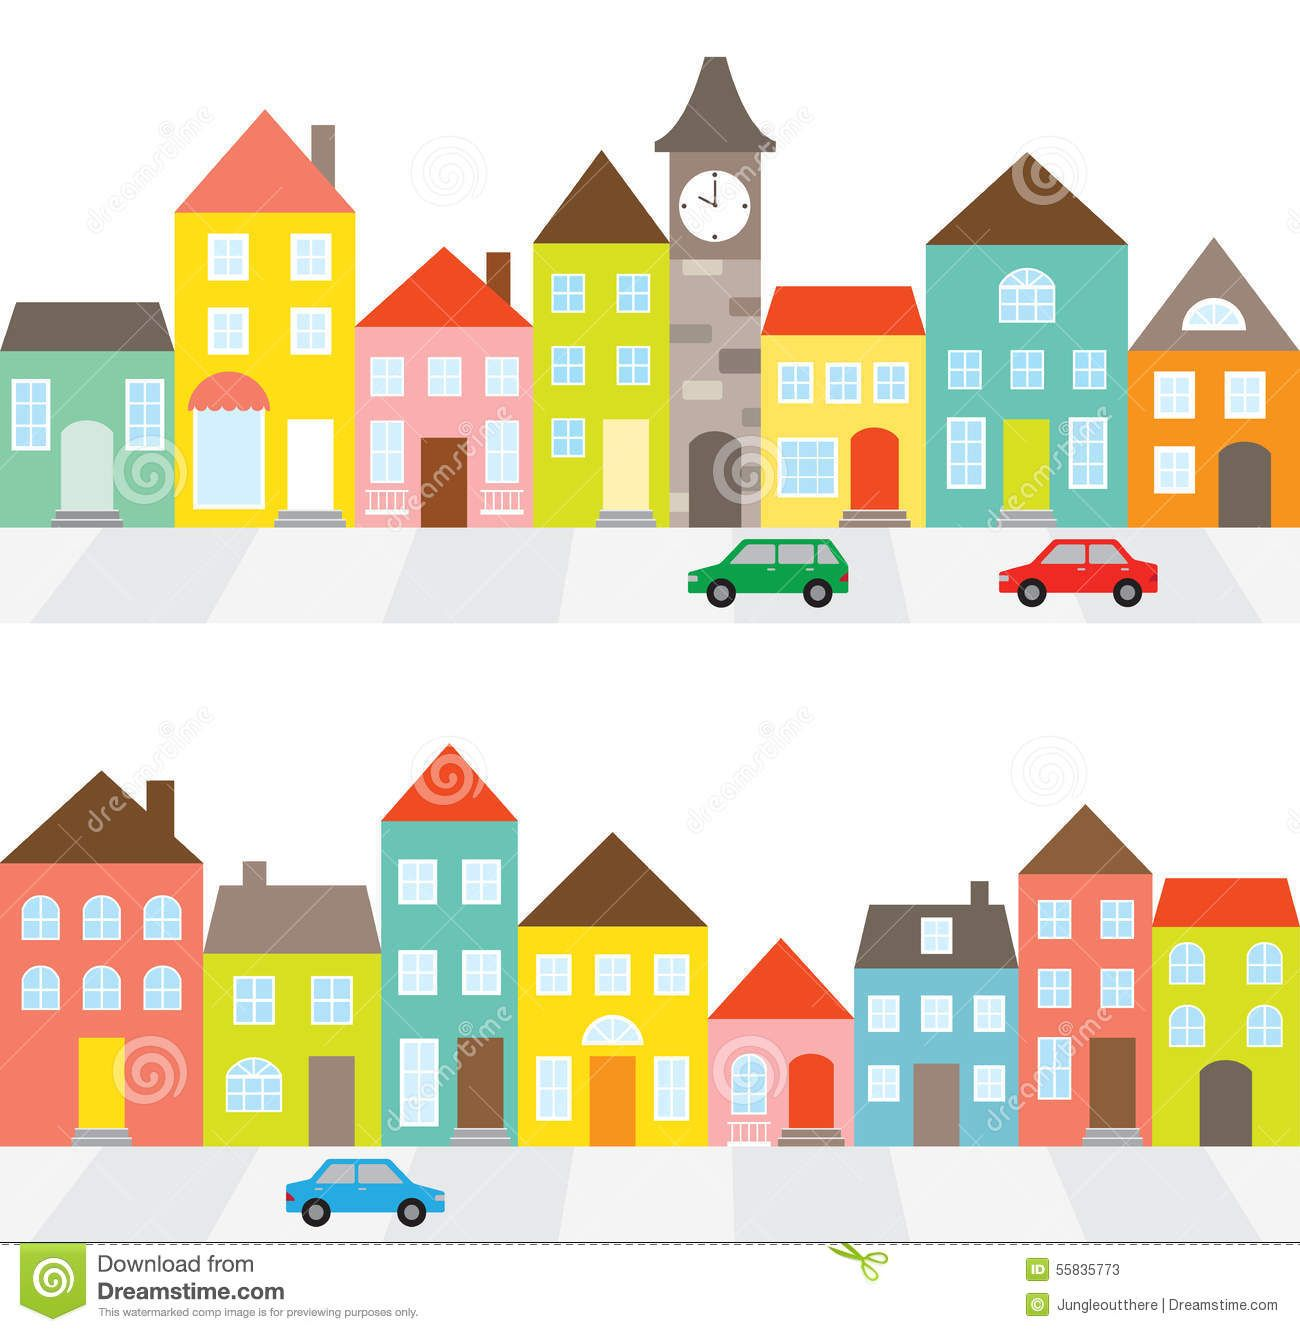 Photo about Illustration of a town scene with row of houses.